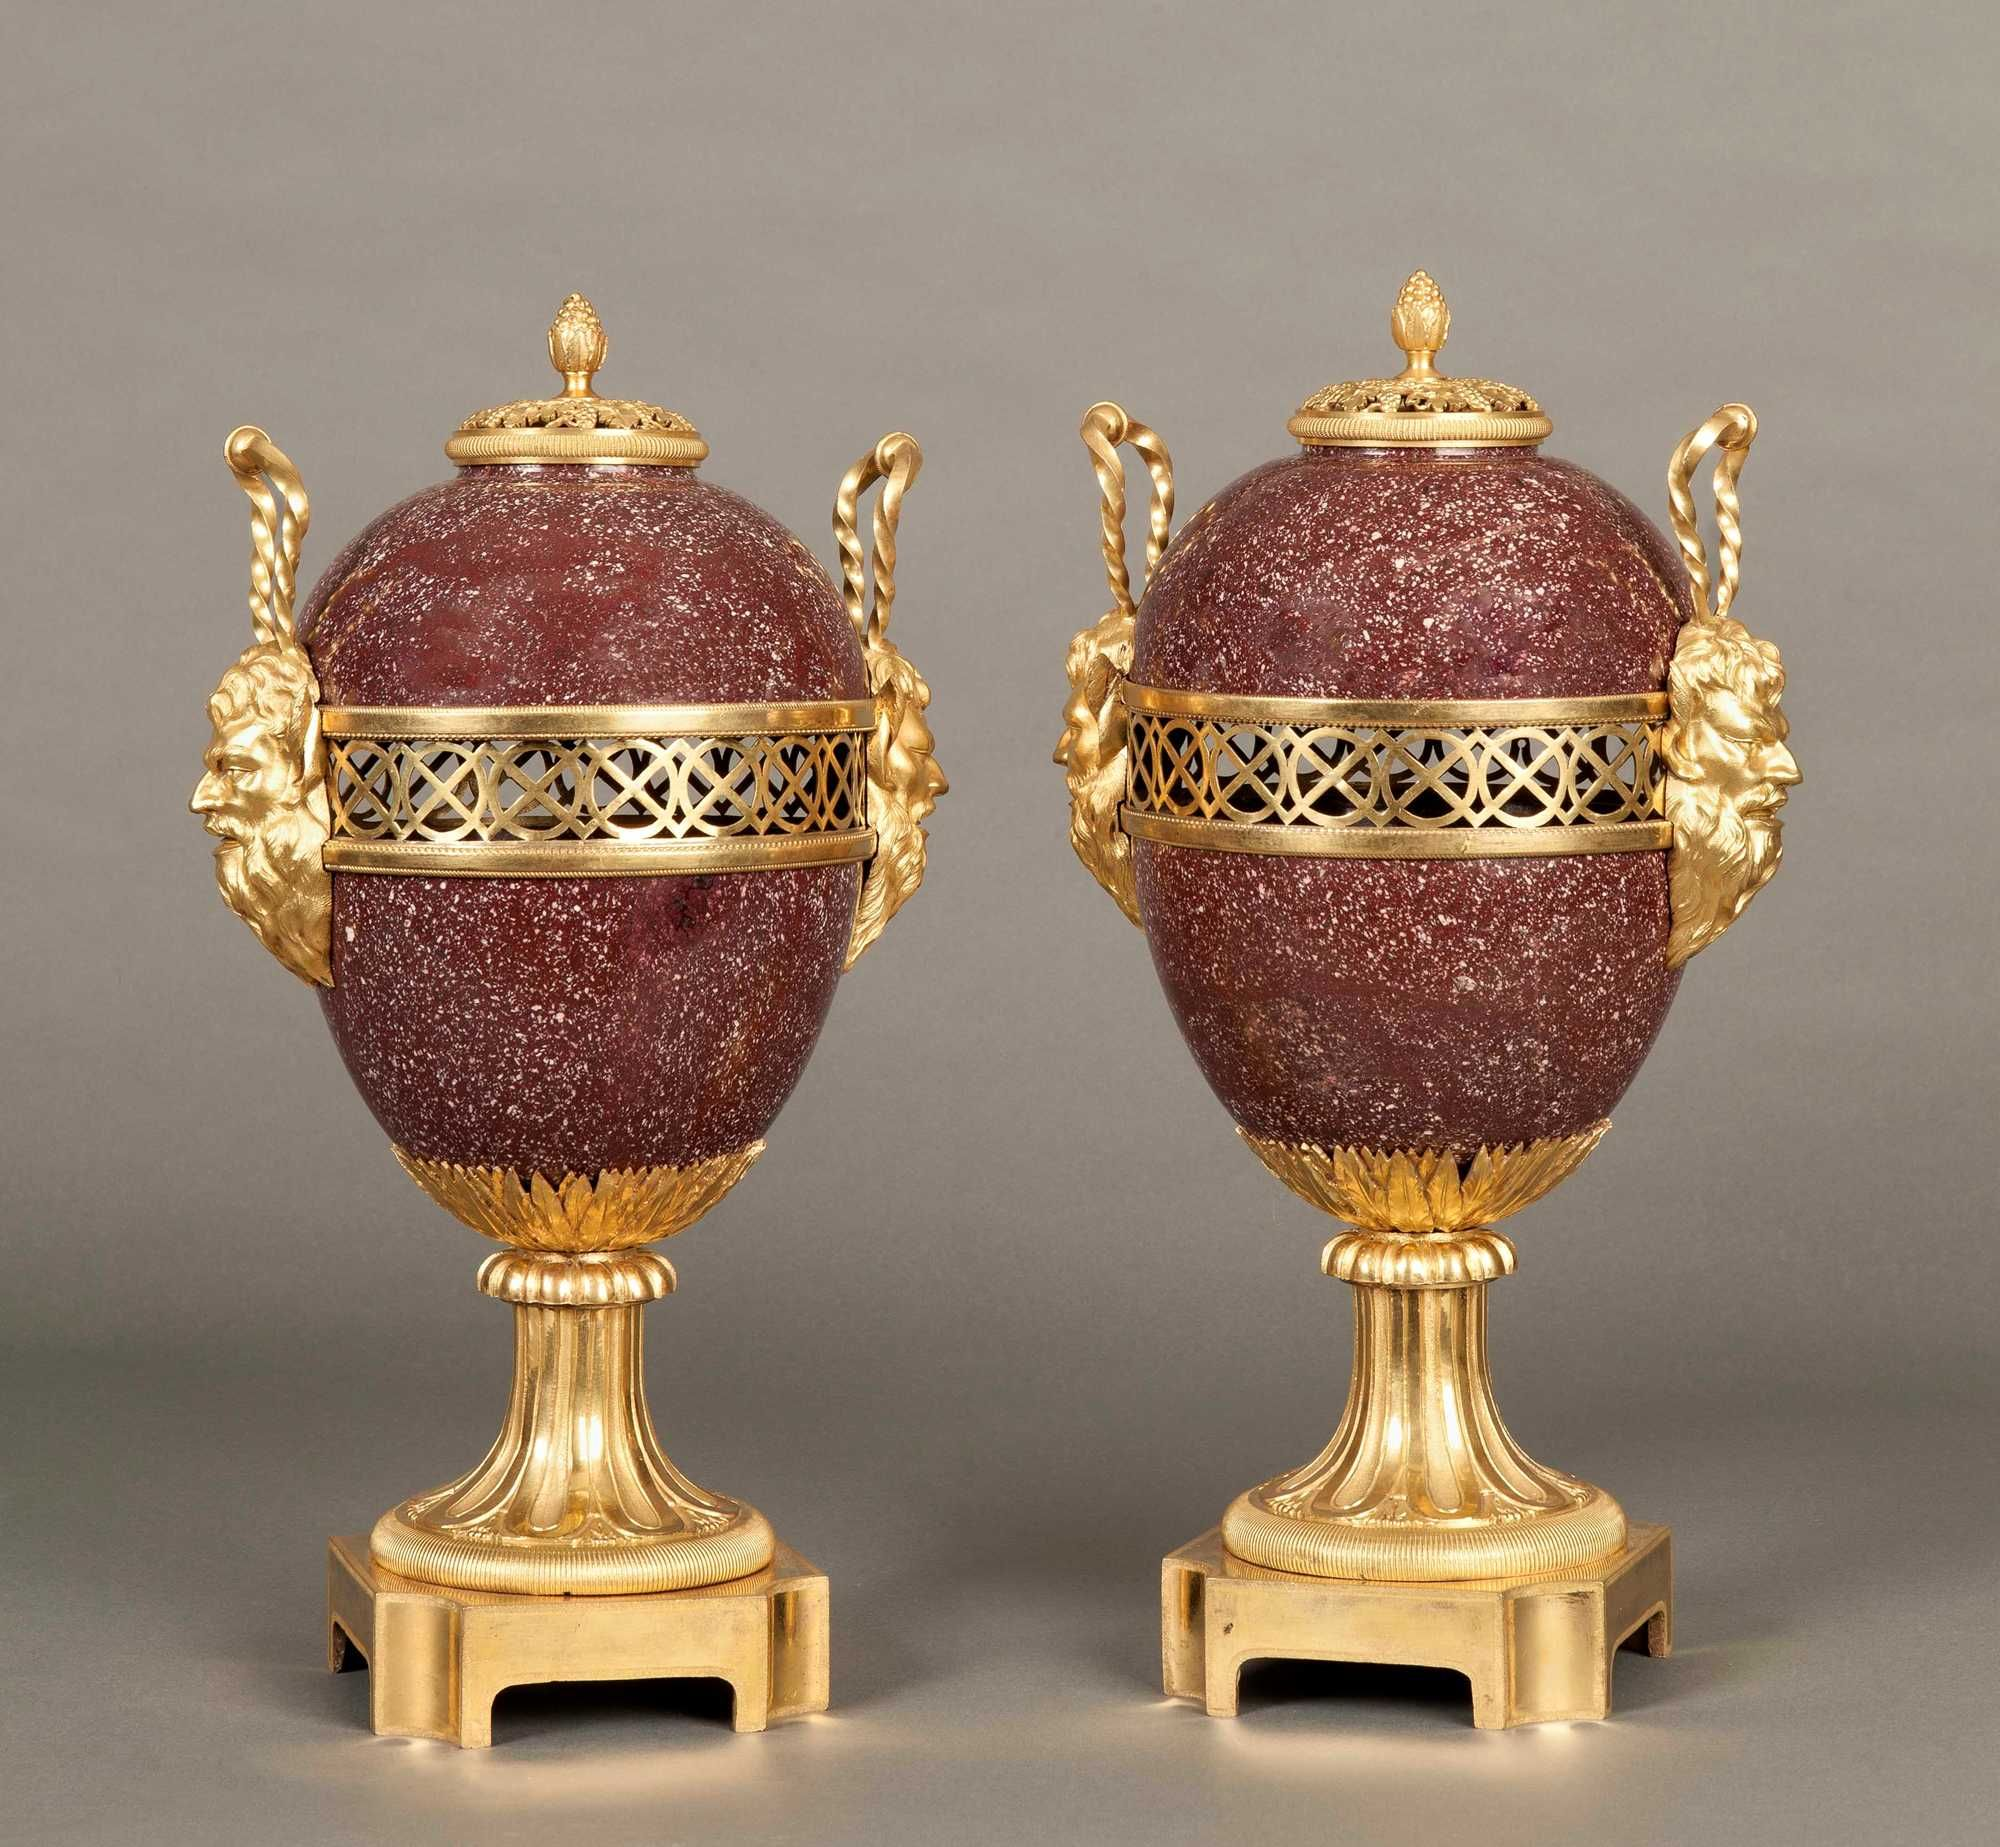 Decorative Urns Vases A Pair Of Antique Porphyry Vases Mounted In Finely Cast And Chased